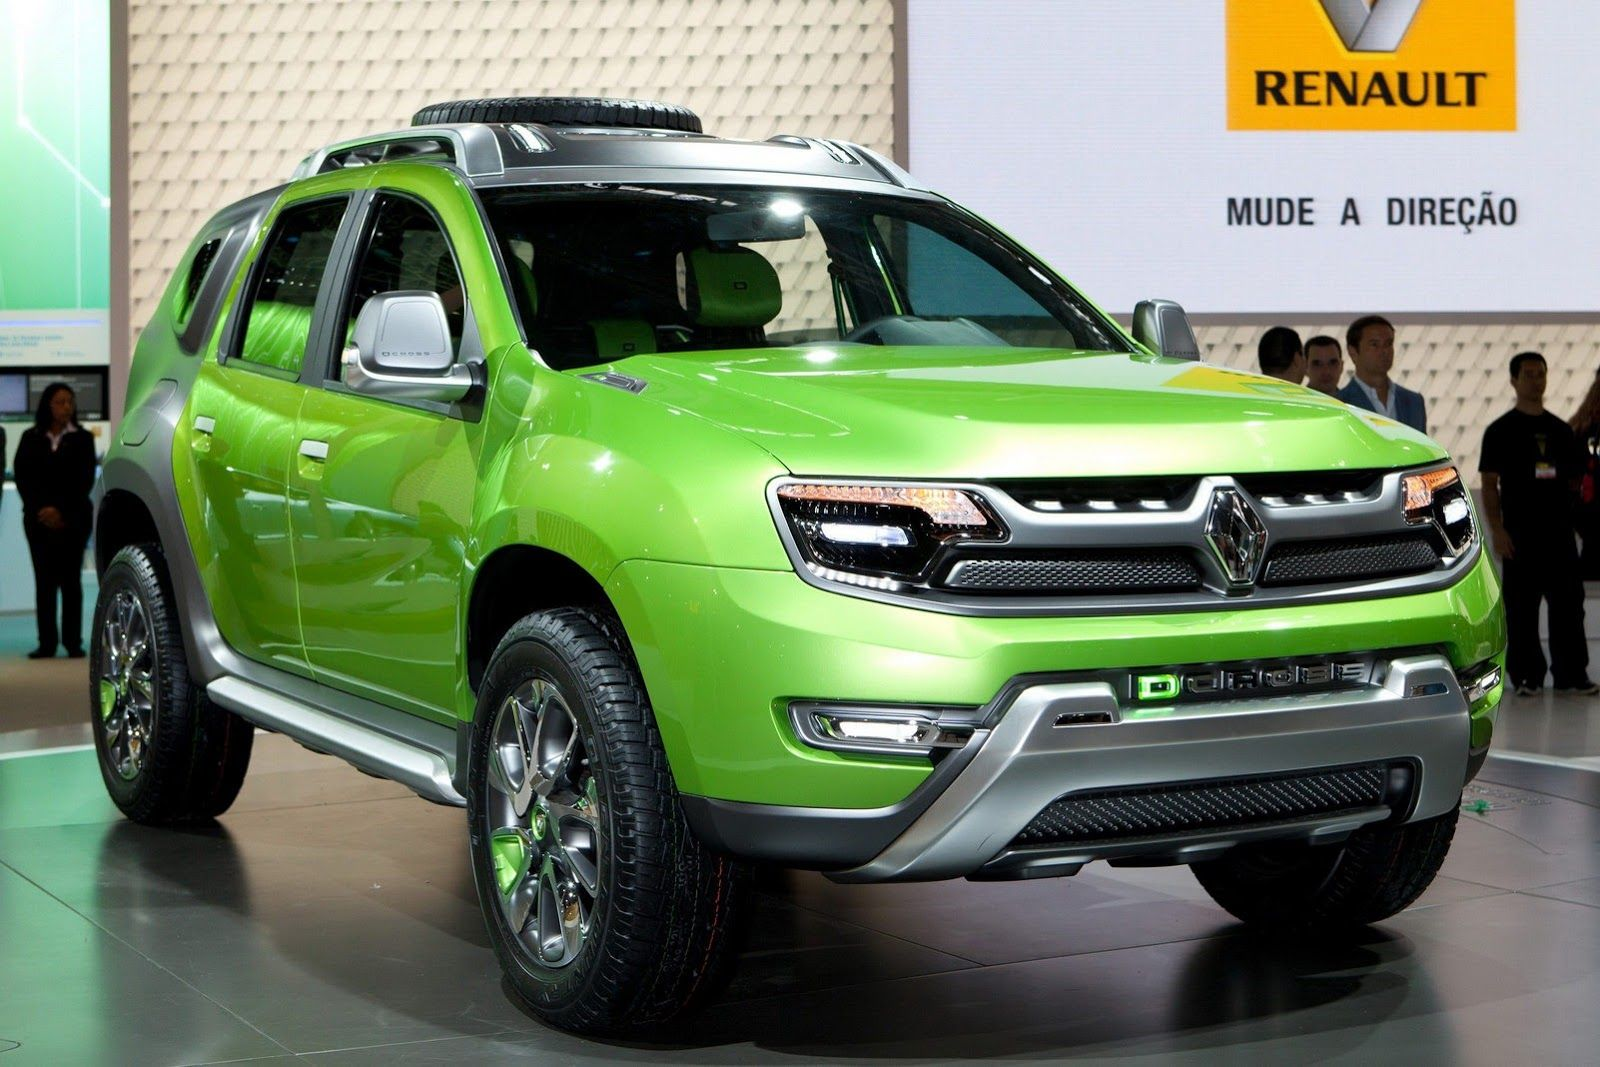 At the sao paulo motor show renault has unveiled the dcross concept a study based on the design of the dacia duster and characterized by a rugged